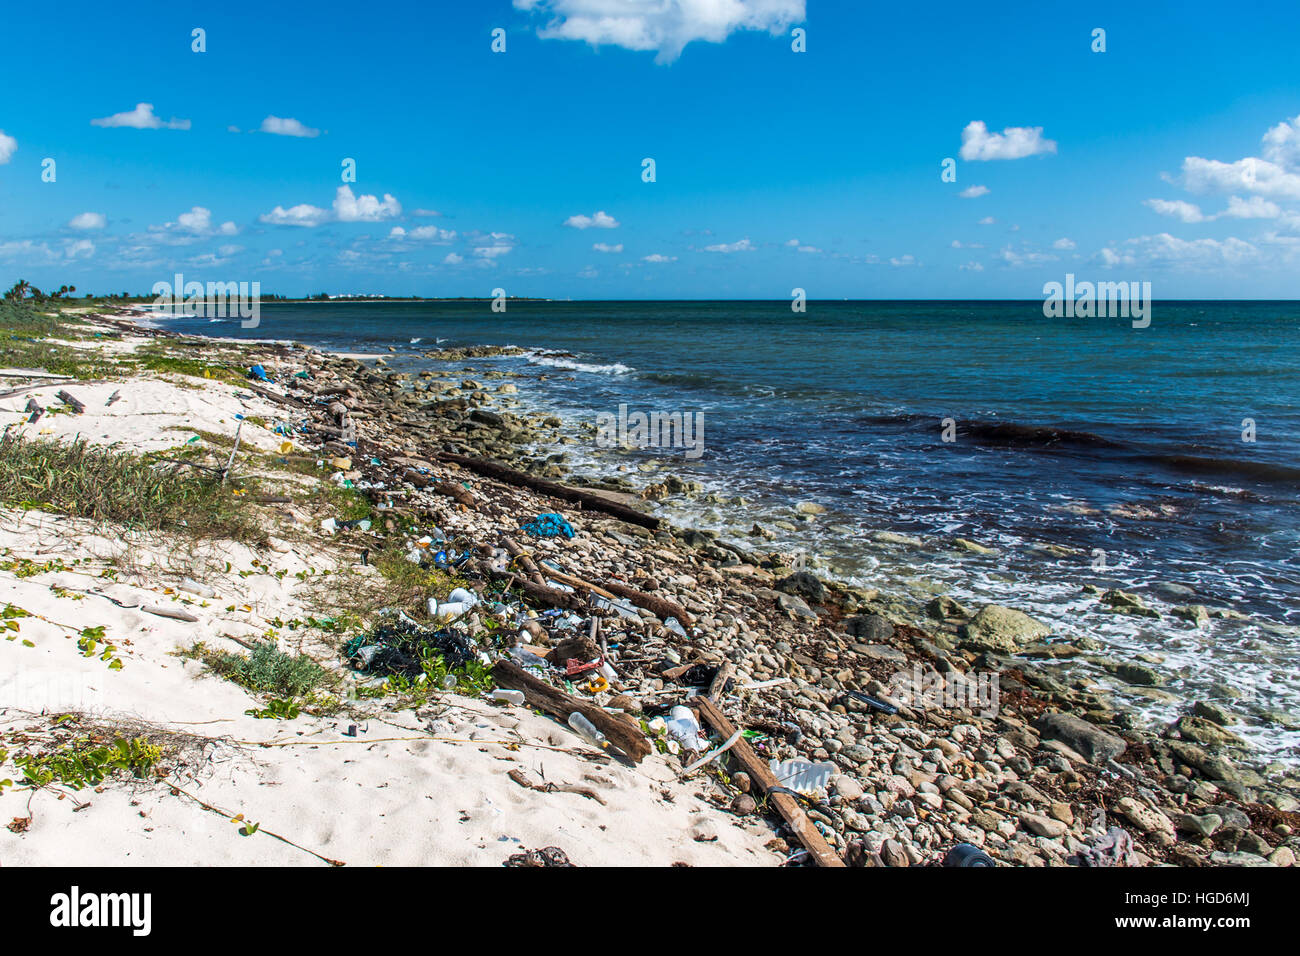 Mexico Coastline ocean Pollution Problem with plastic litter 6 - Stock Image